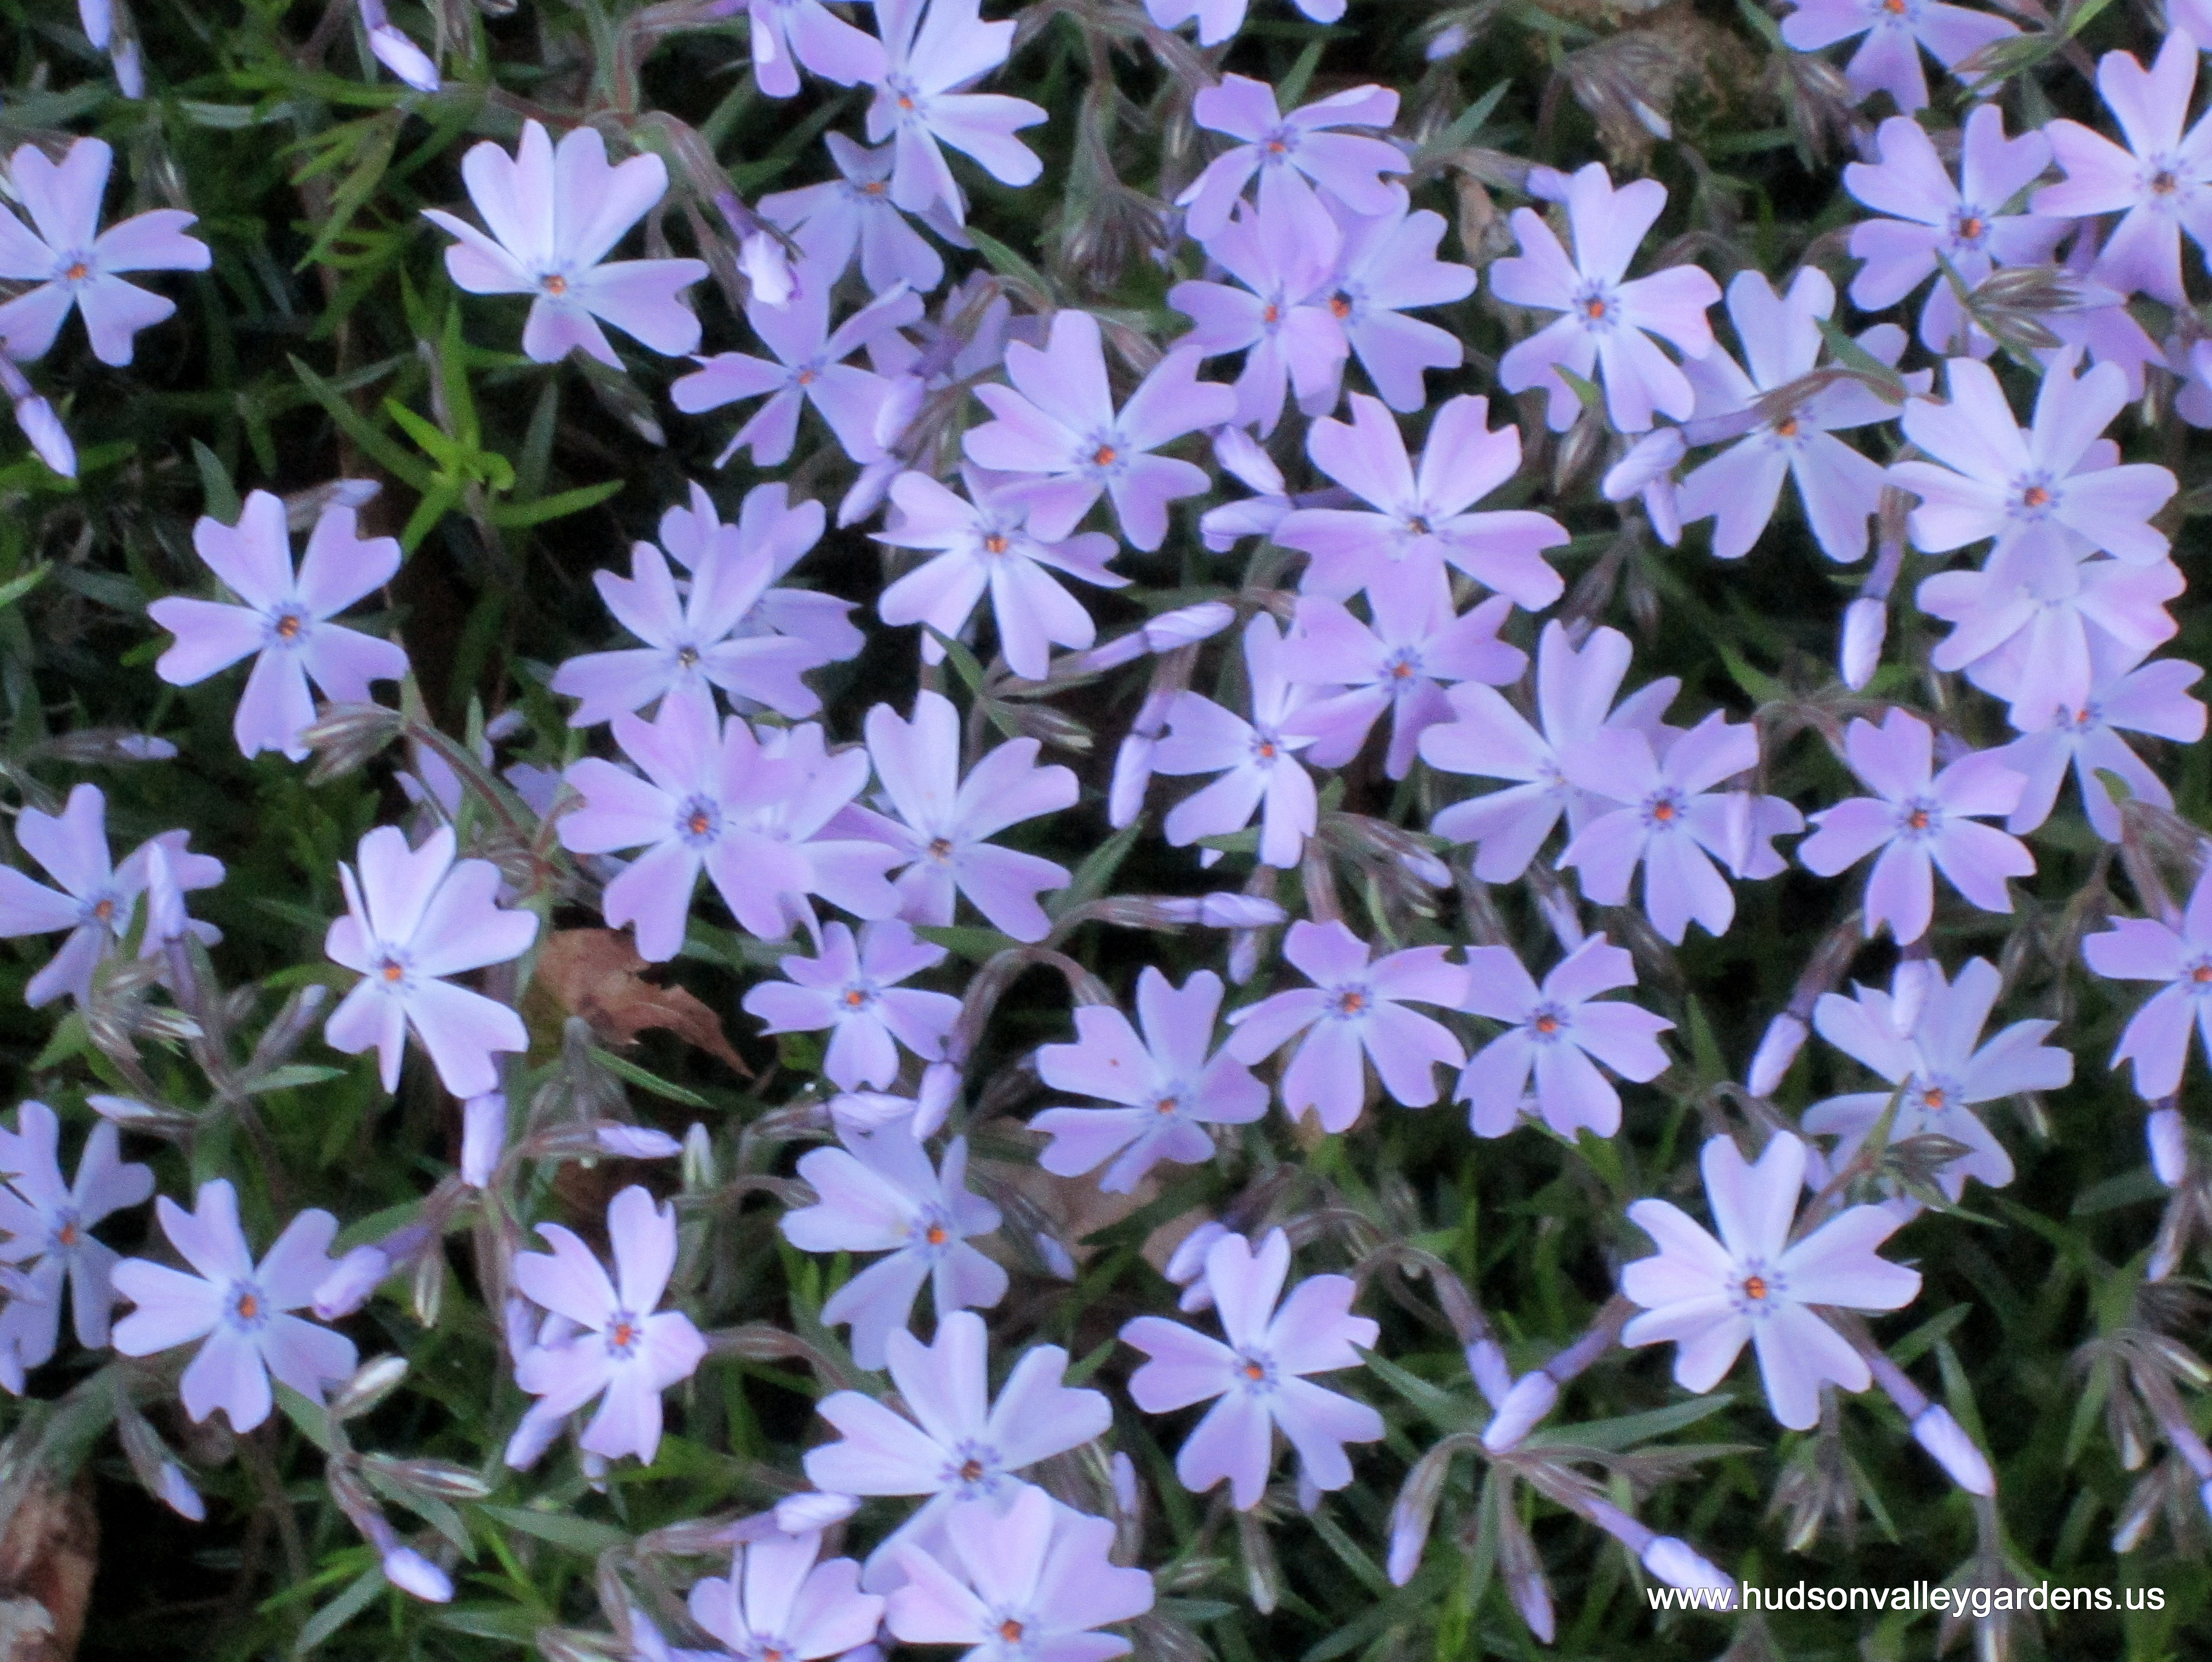 Cute Creeping Phlox Is Not Deer Food Ten Deer Resistant Plants Hudson Valley Hudson Valley Creeping Phlox Seeds Ebay Creeping Phlox Seeds Amazon houzz-03 Creeping Phlox Seeds